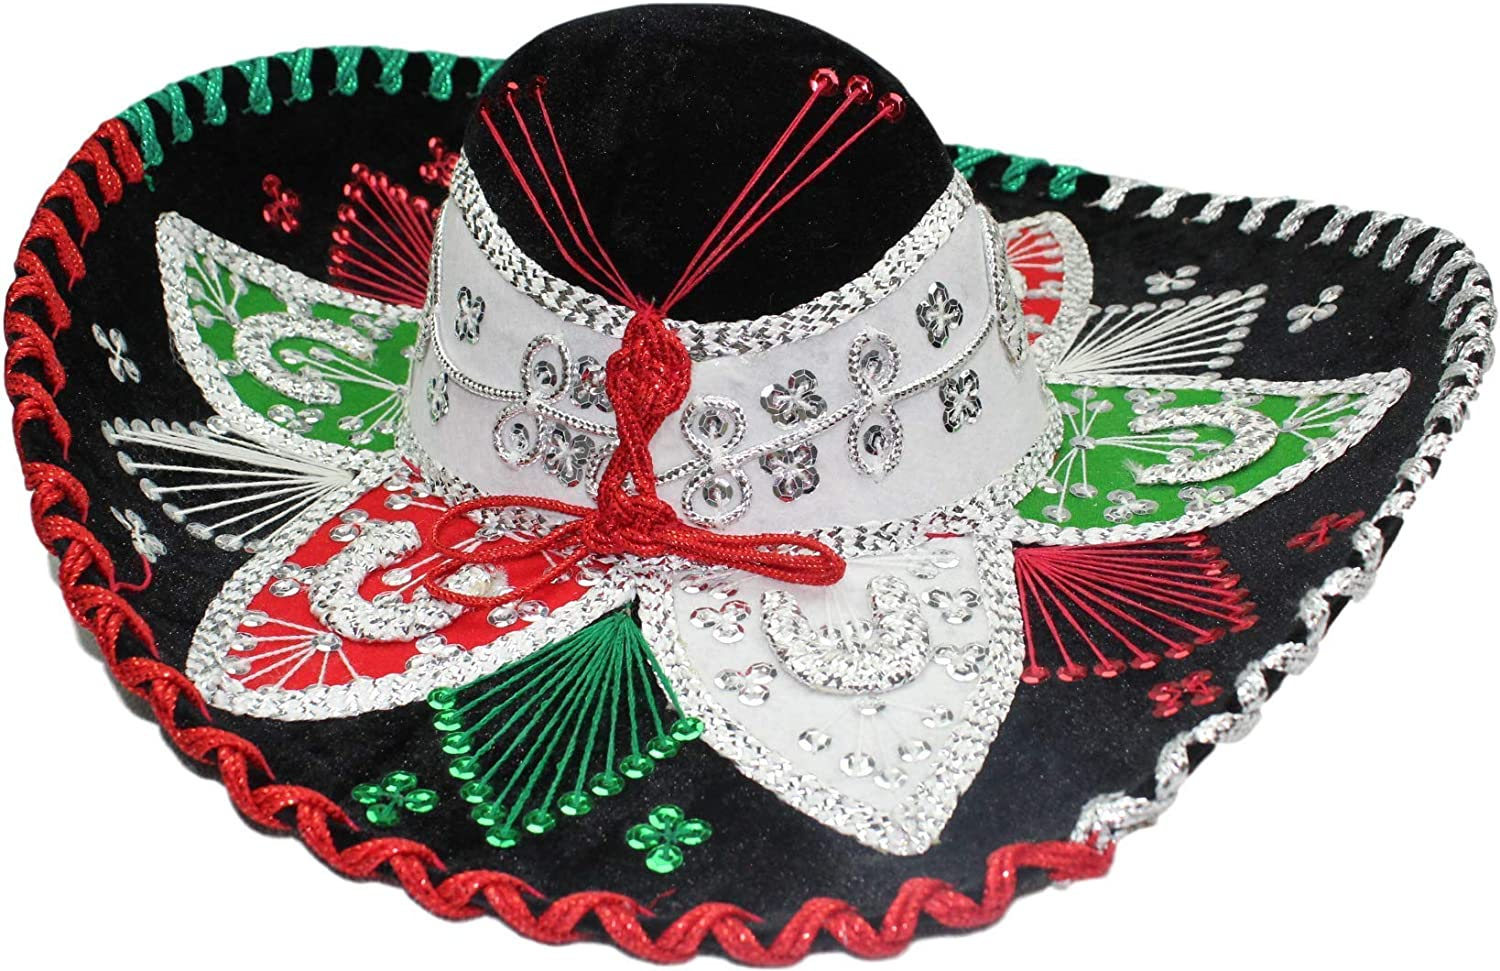 Authentic Mariachi Sombrero Flowers Style Fancy Premium Mexican Sombrero Hat Made in Mexico Choose Size /& Color